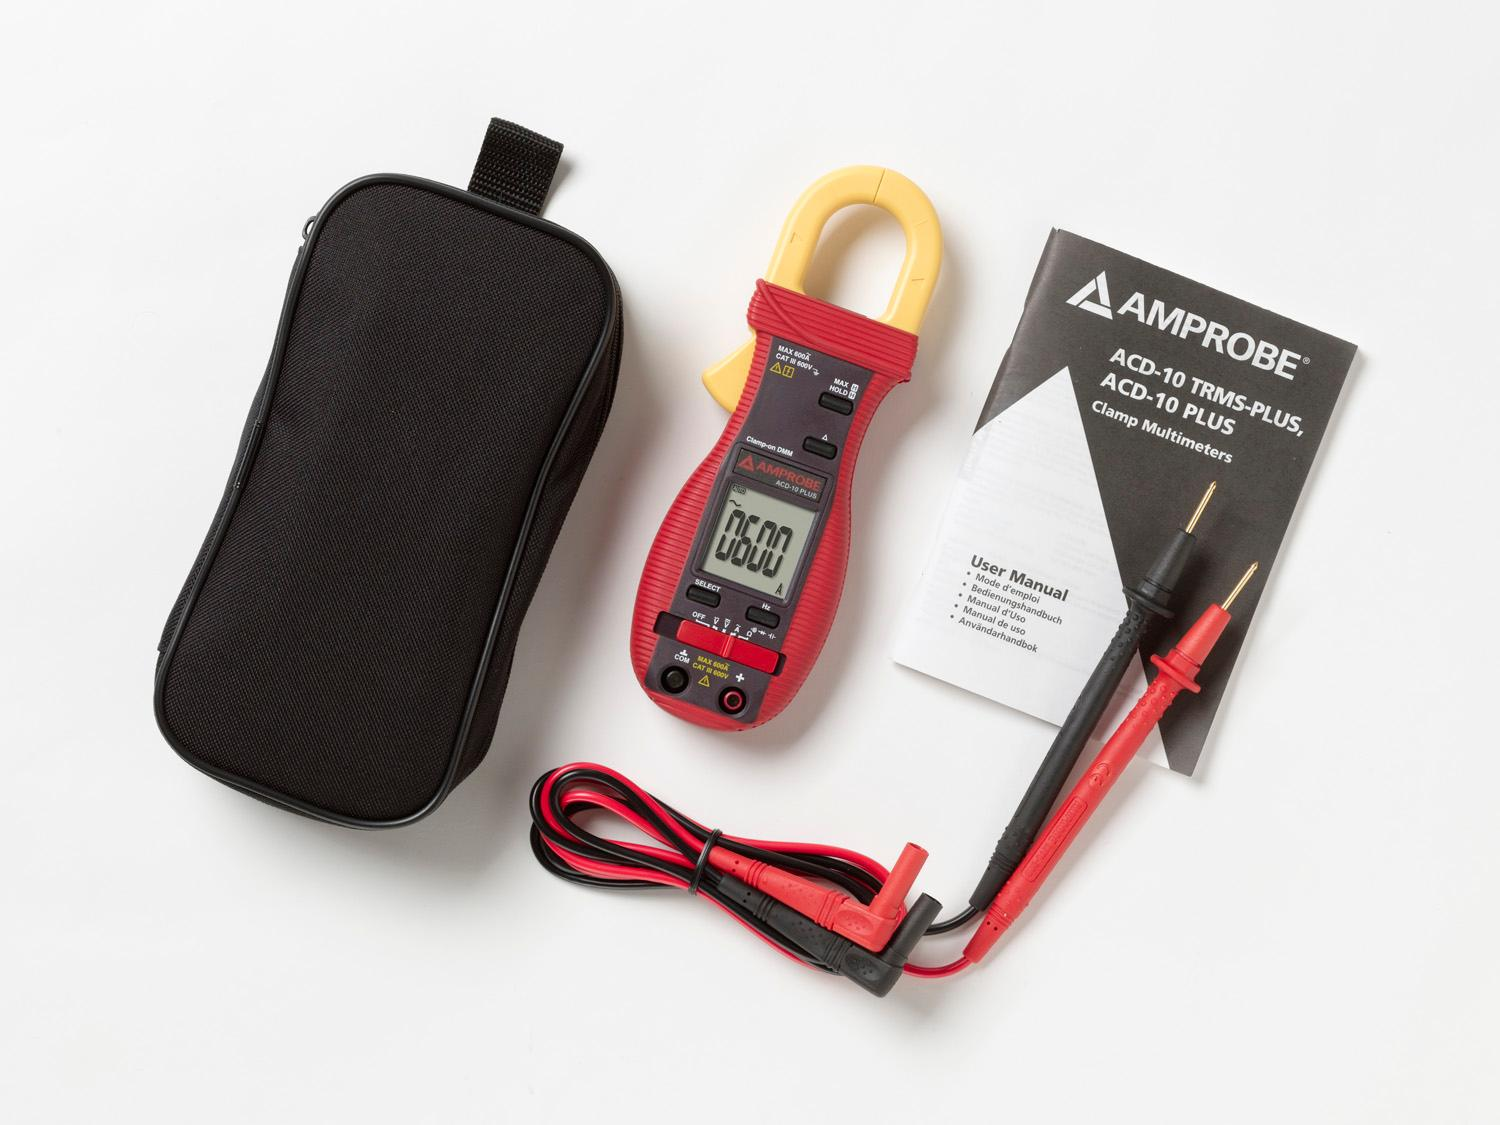 Amprobe Acd 10 Plus 600a Clamp Multimeter Amazon Ca